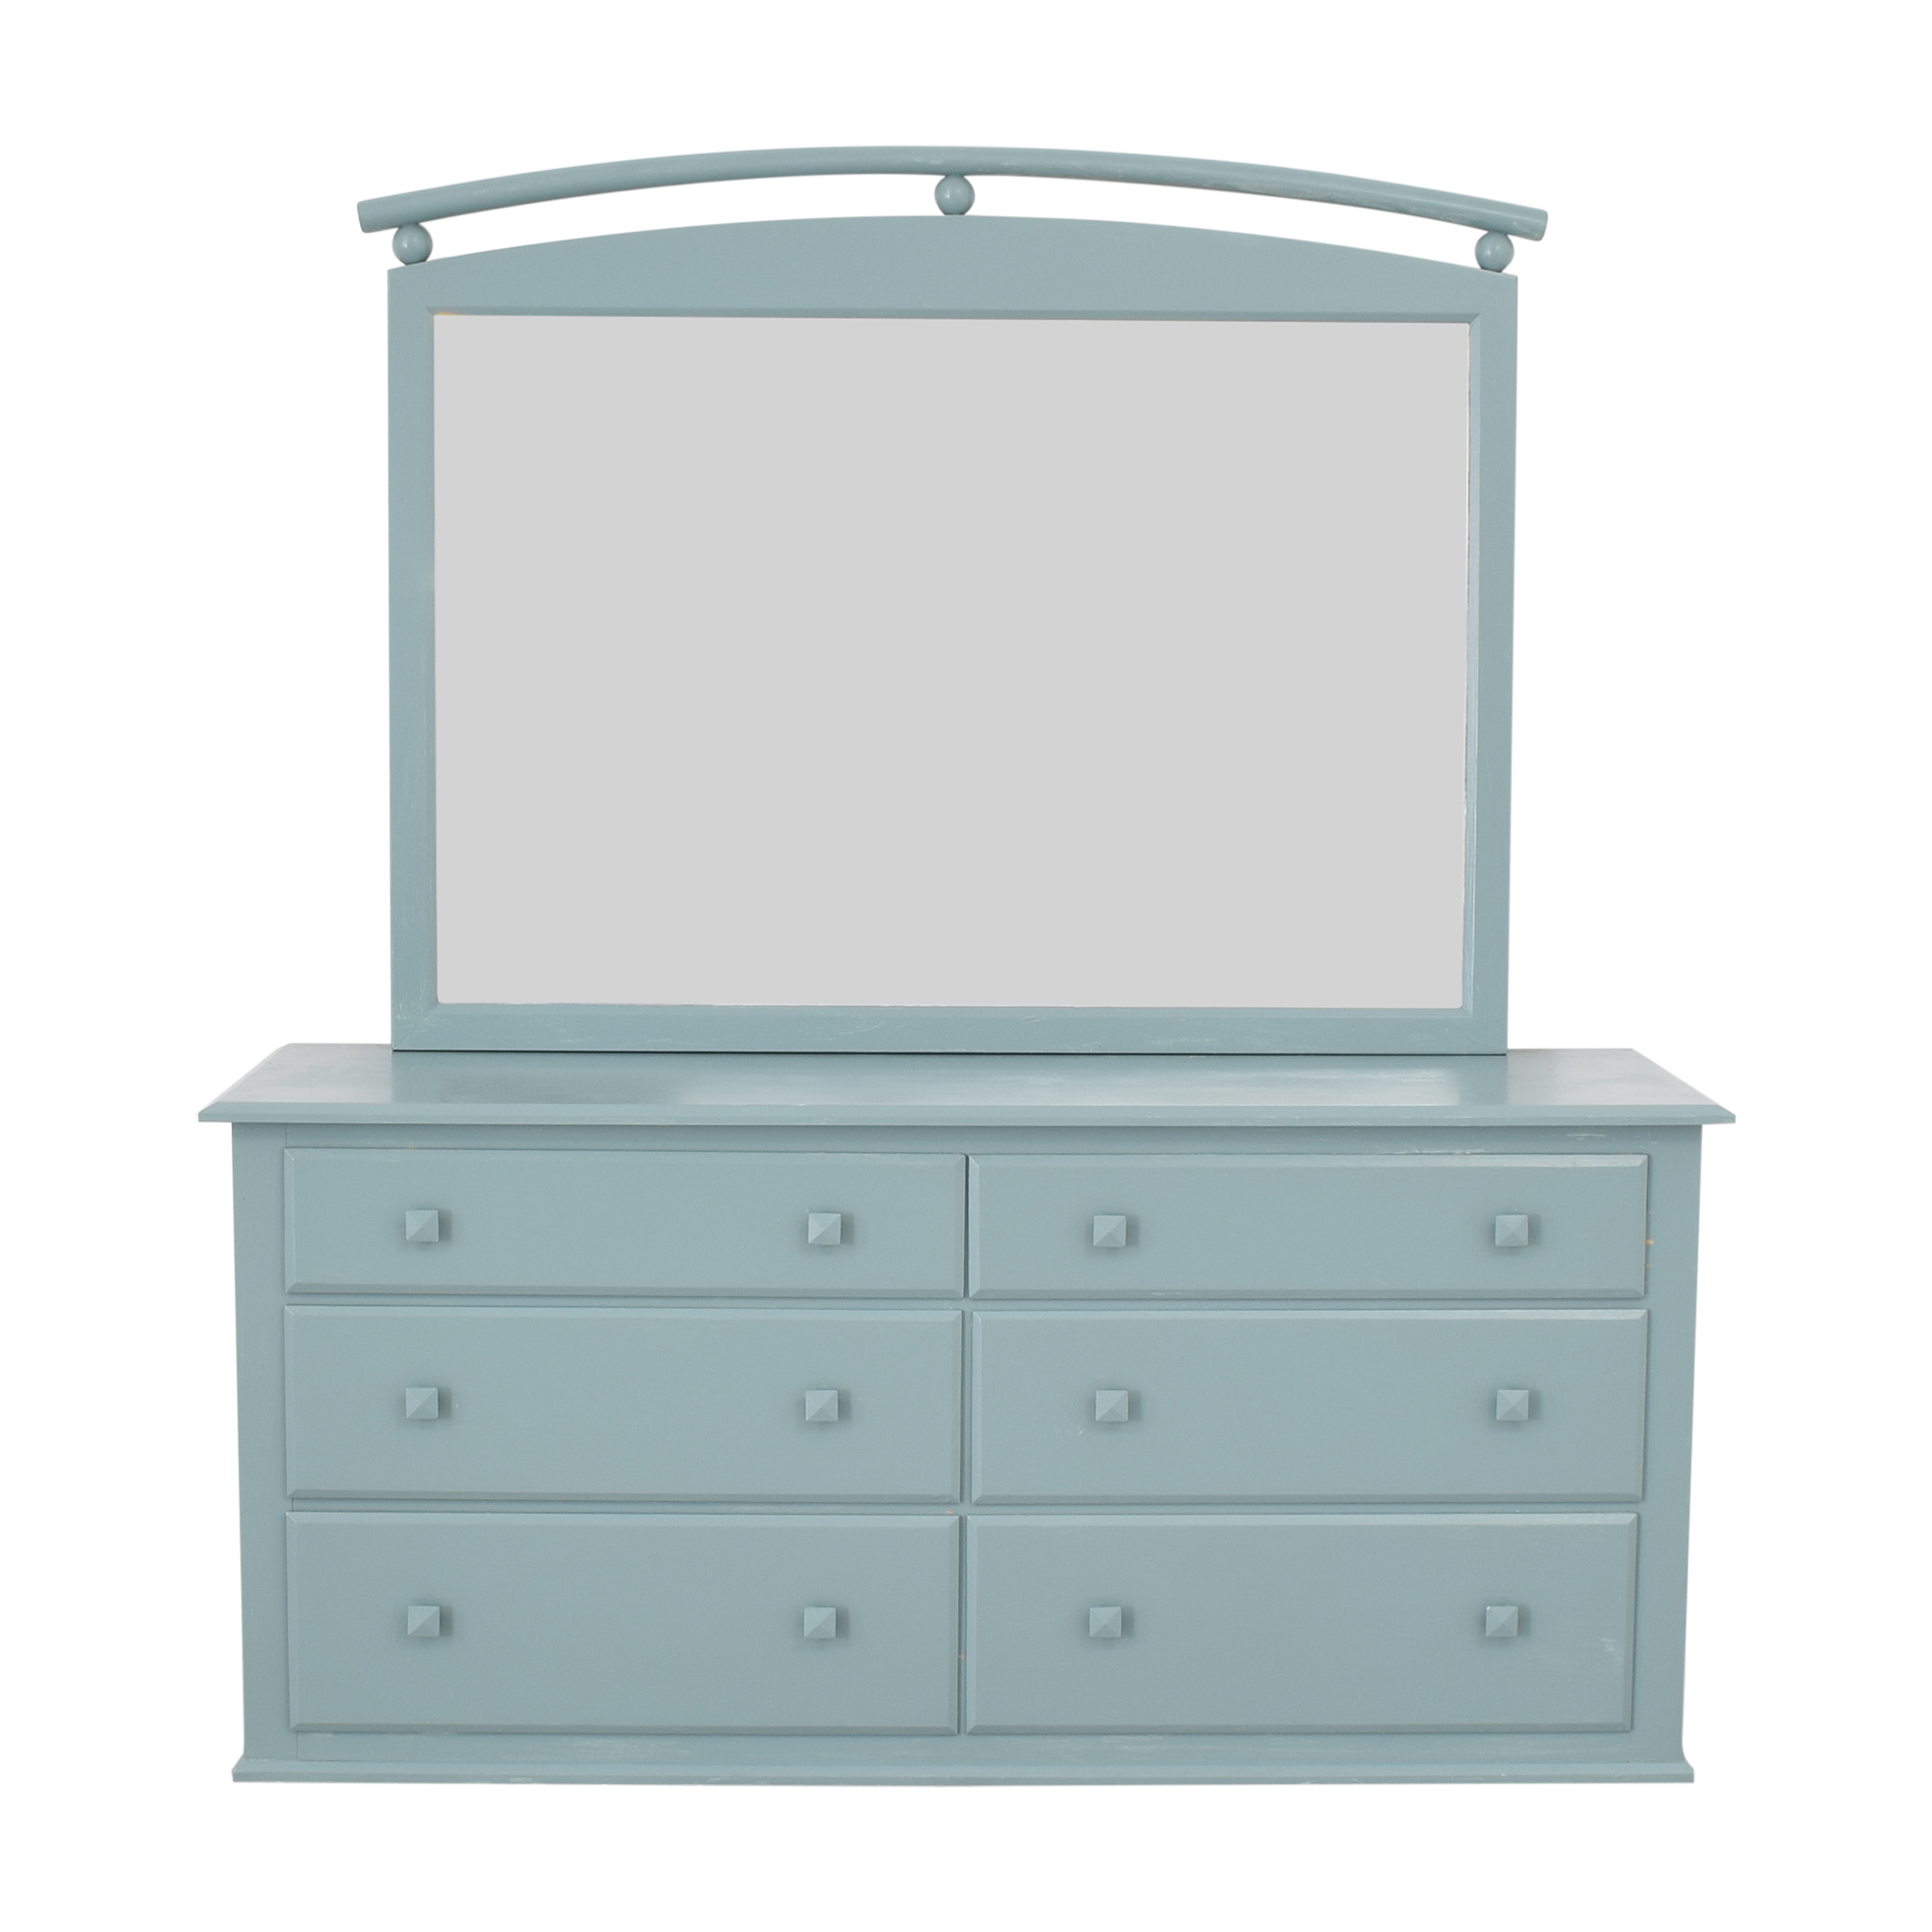 Ethan Allen Ethan Allen American Dimensions Dresser with Mirror pa